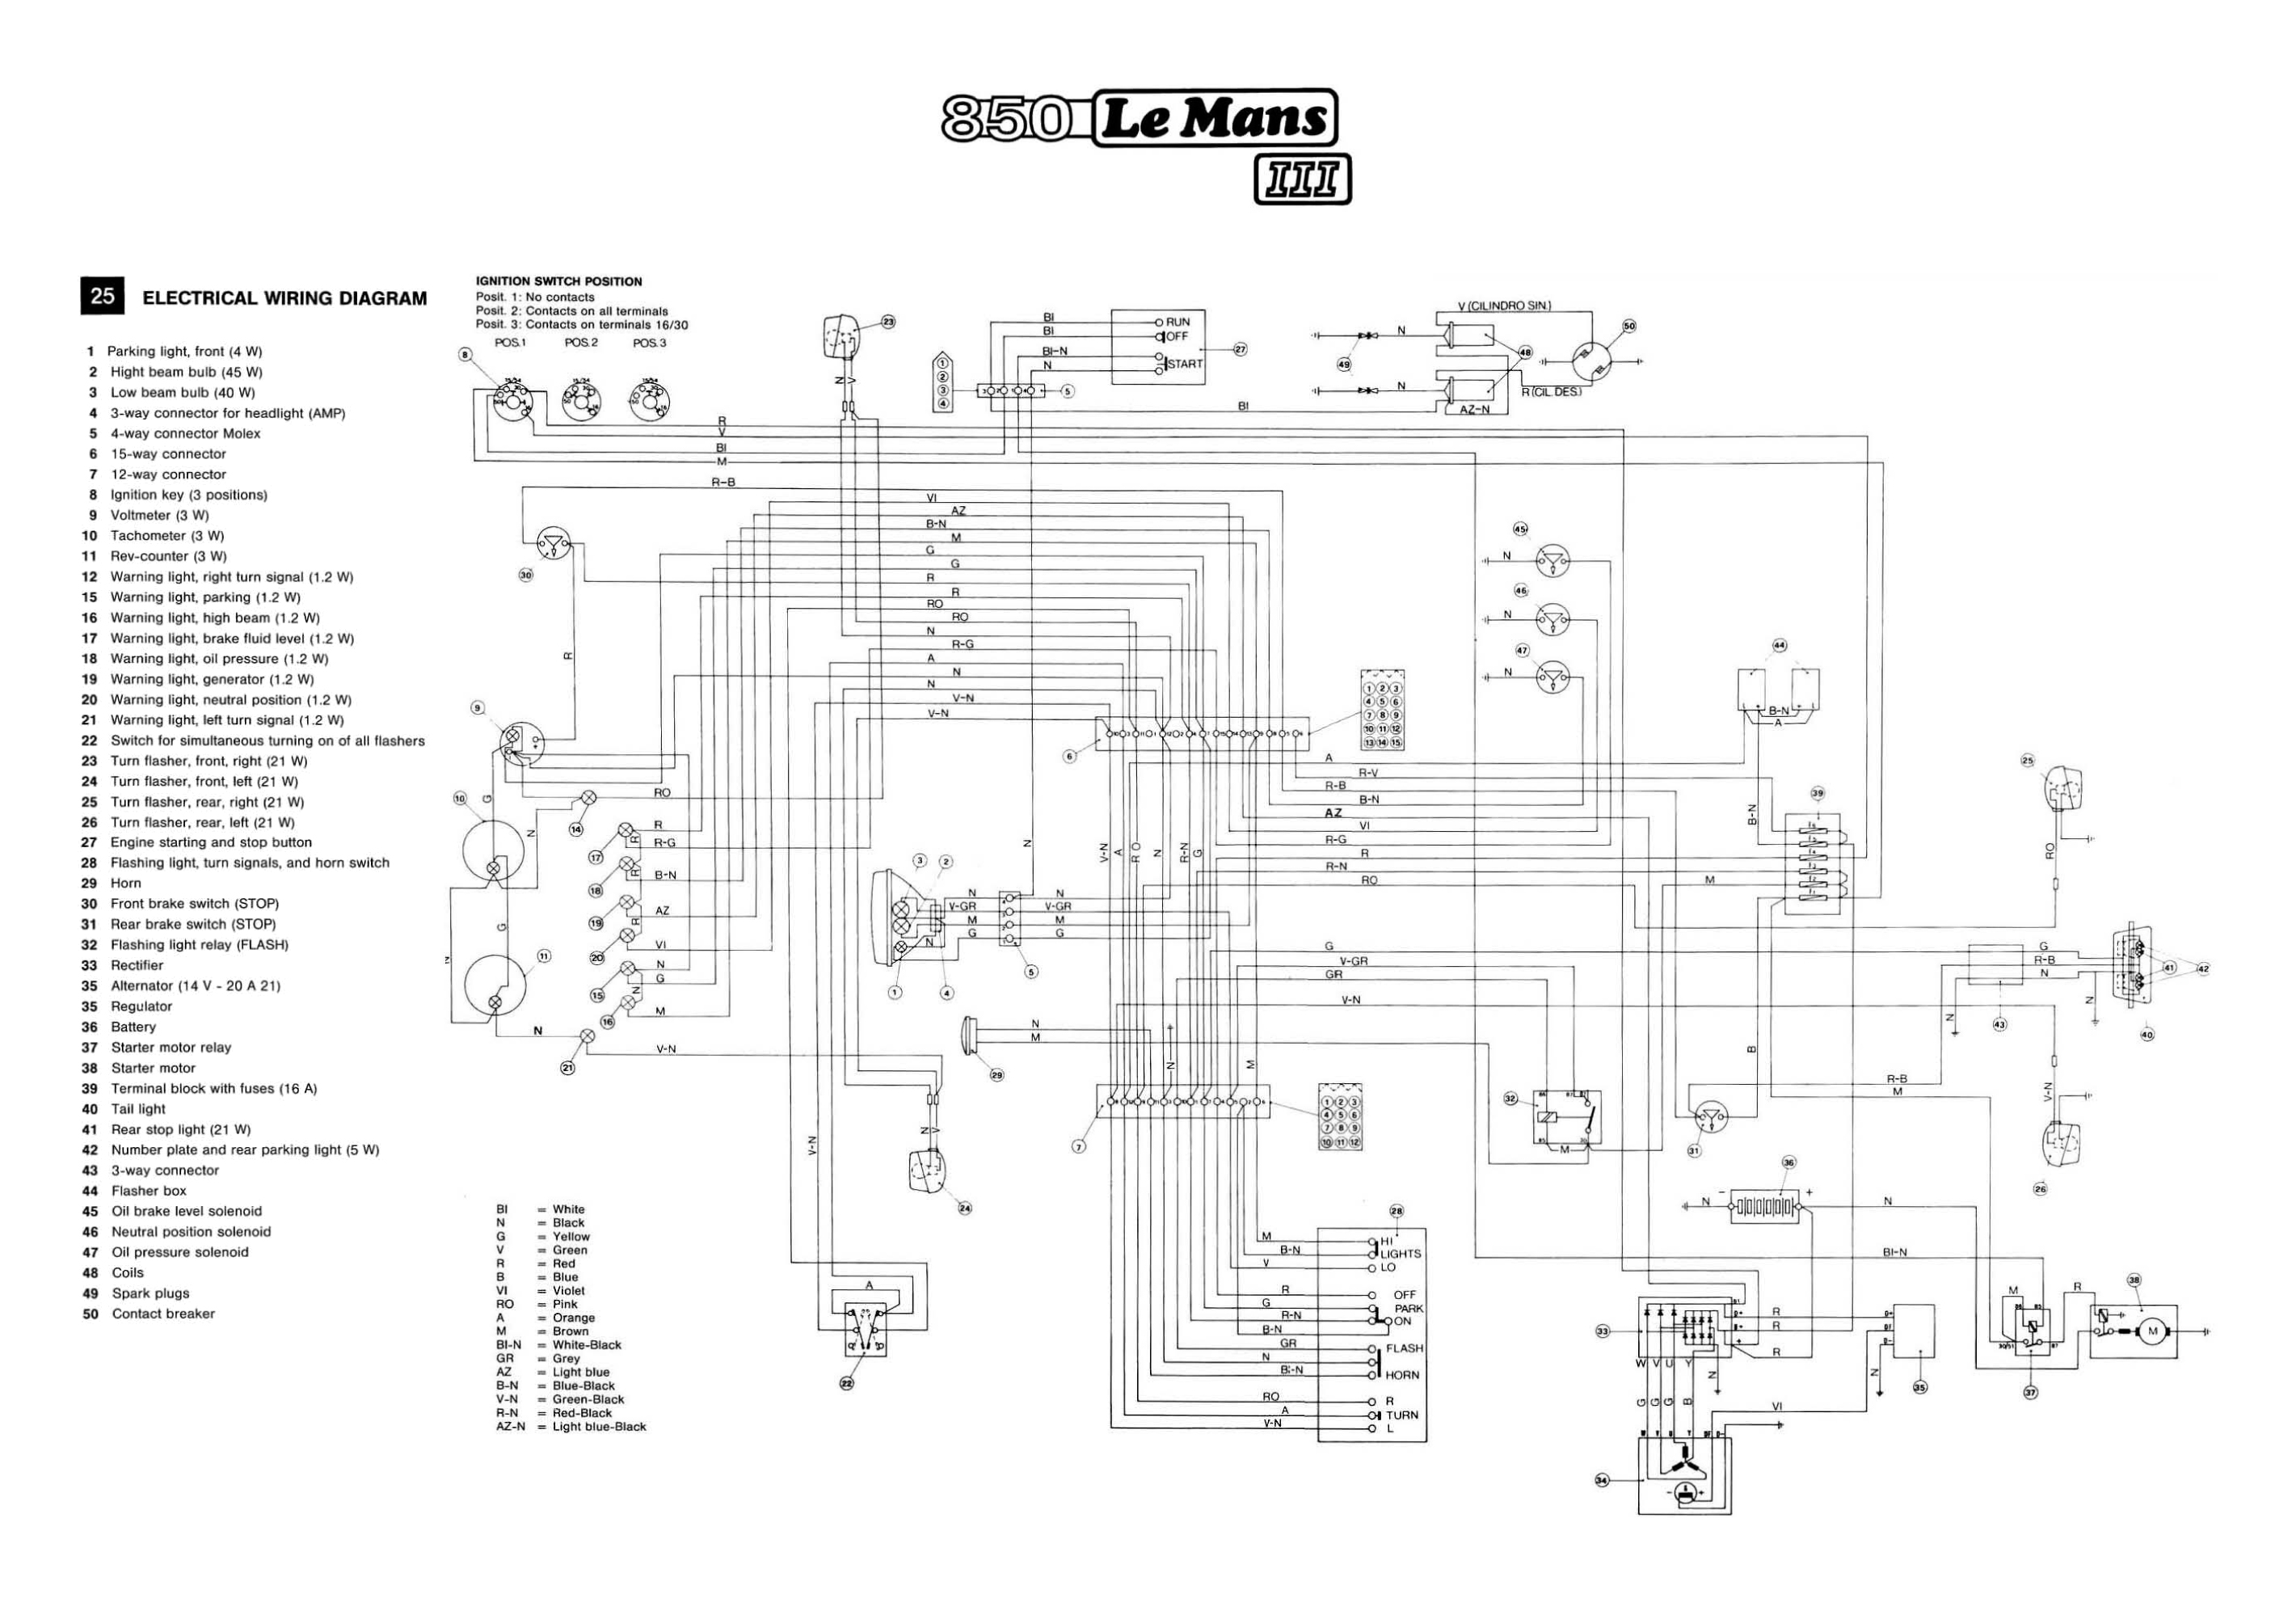 Wiring diagrams wiring diagrams diagram cheapraybanclubmaster Images